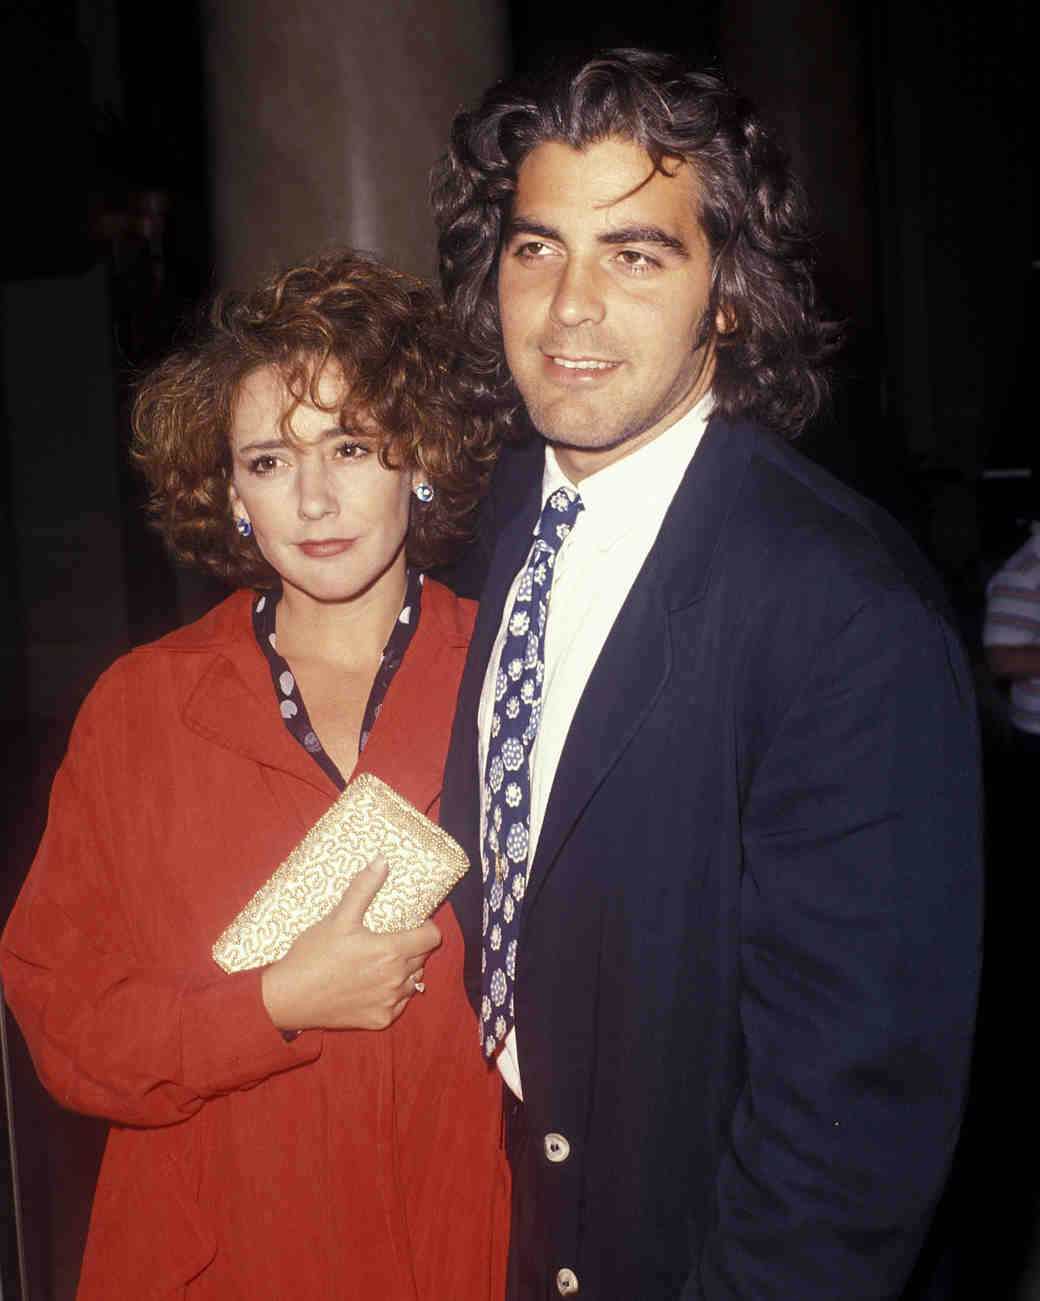 1989: George Clooney and Talia Balsam